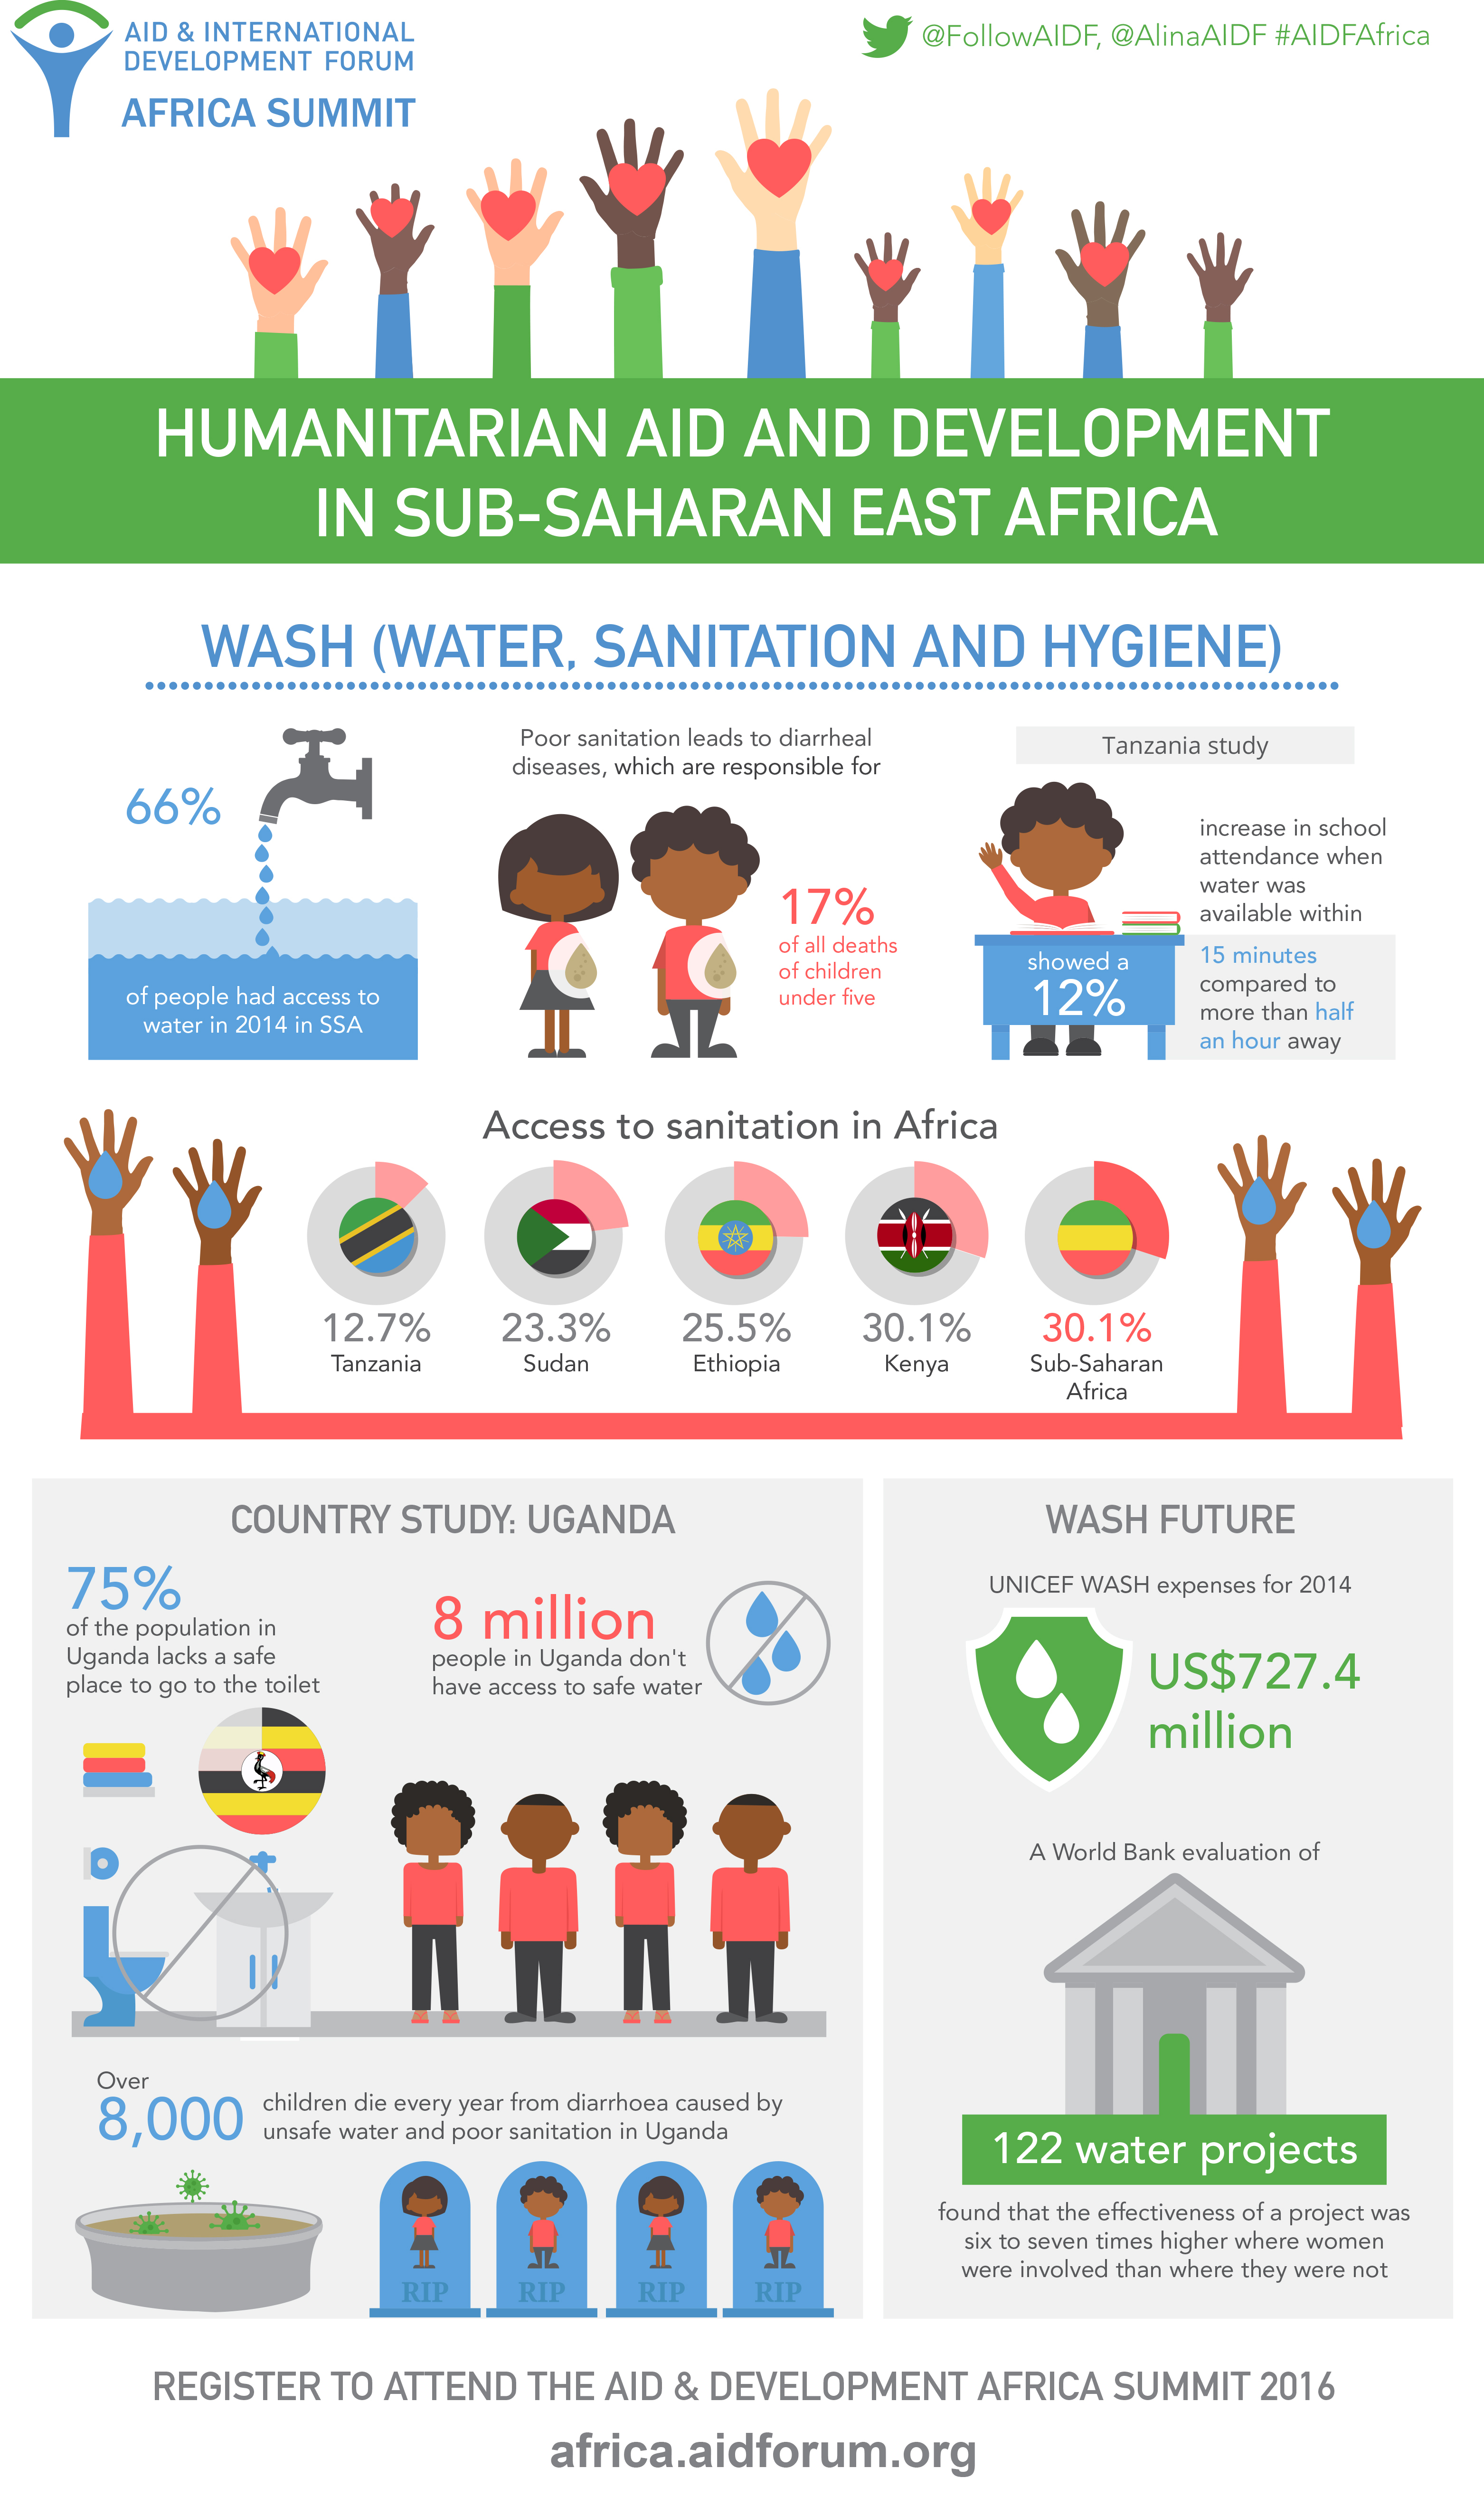 [INFOGRAPHIC] Water, sanitation and hygiene in Sub-Saharan Africa